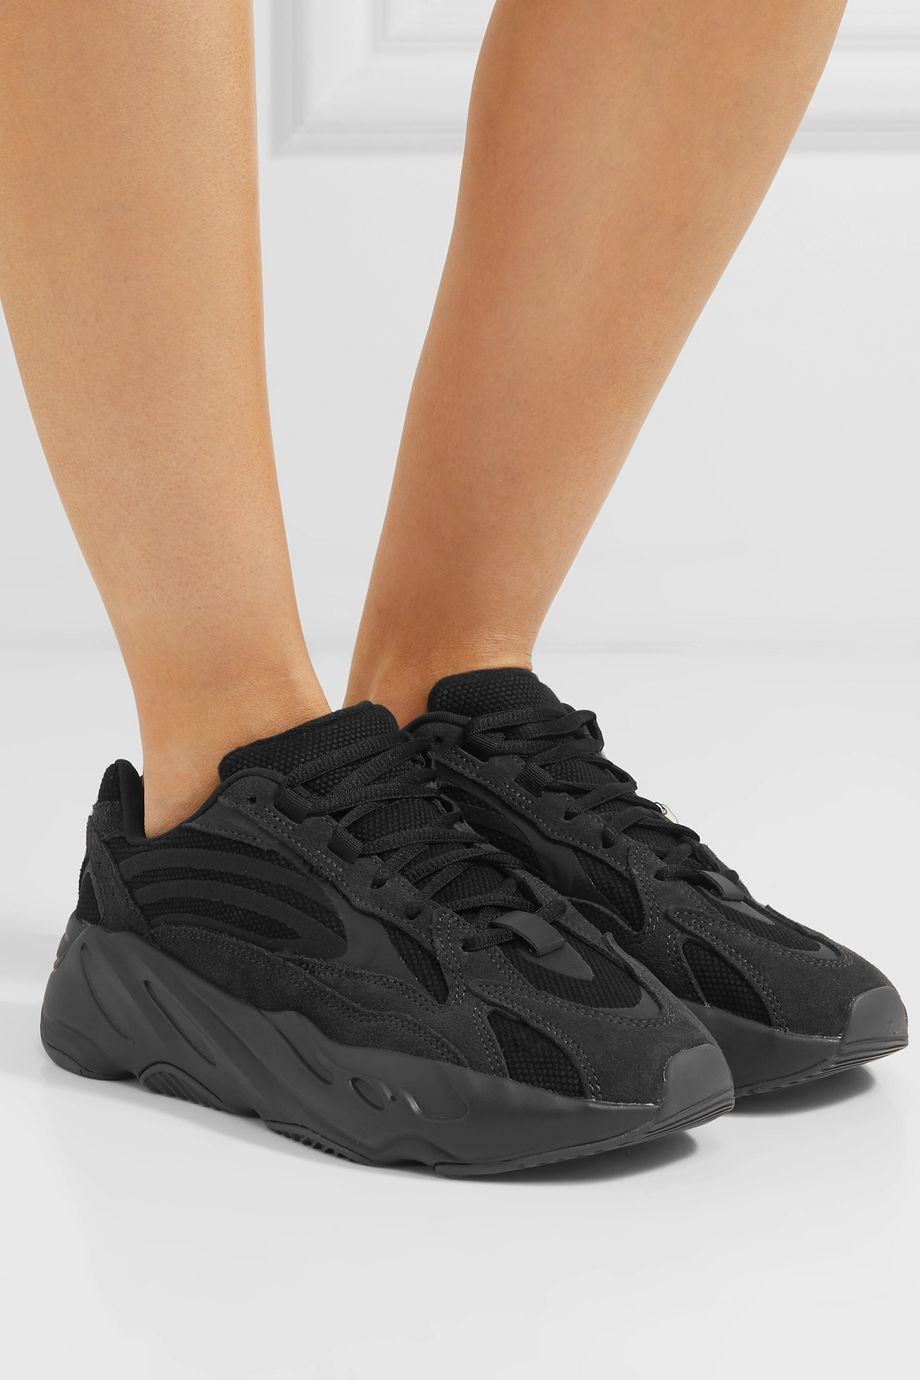 adidas Originals Yeezy Boost 700 V2 mesh and suede sneakers